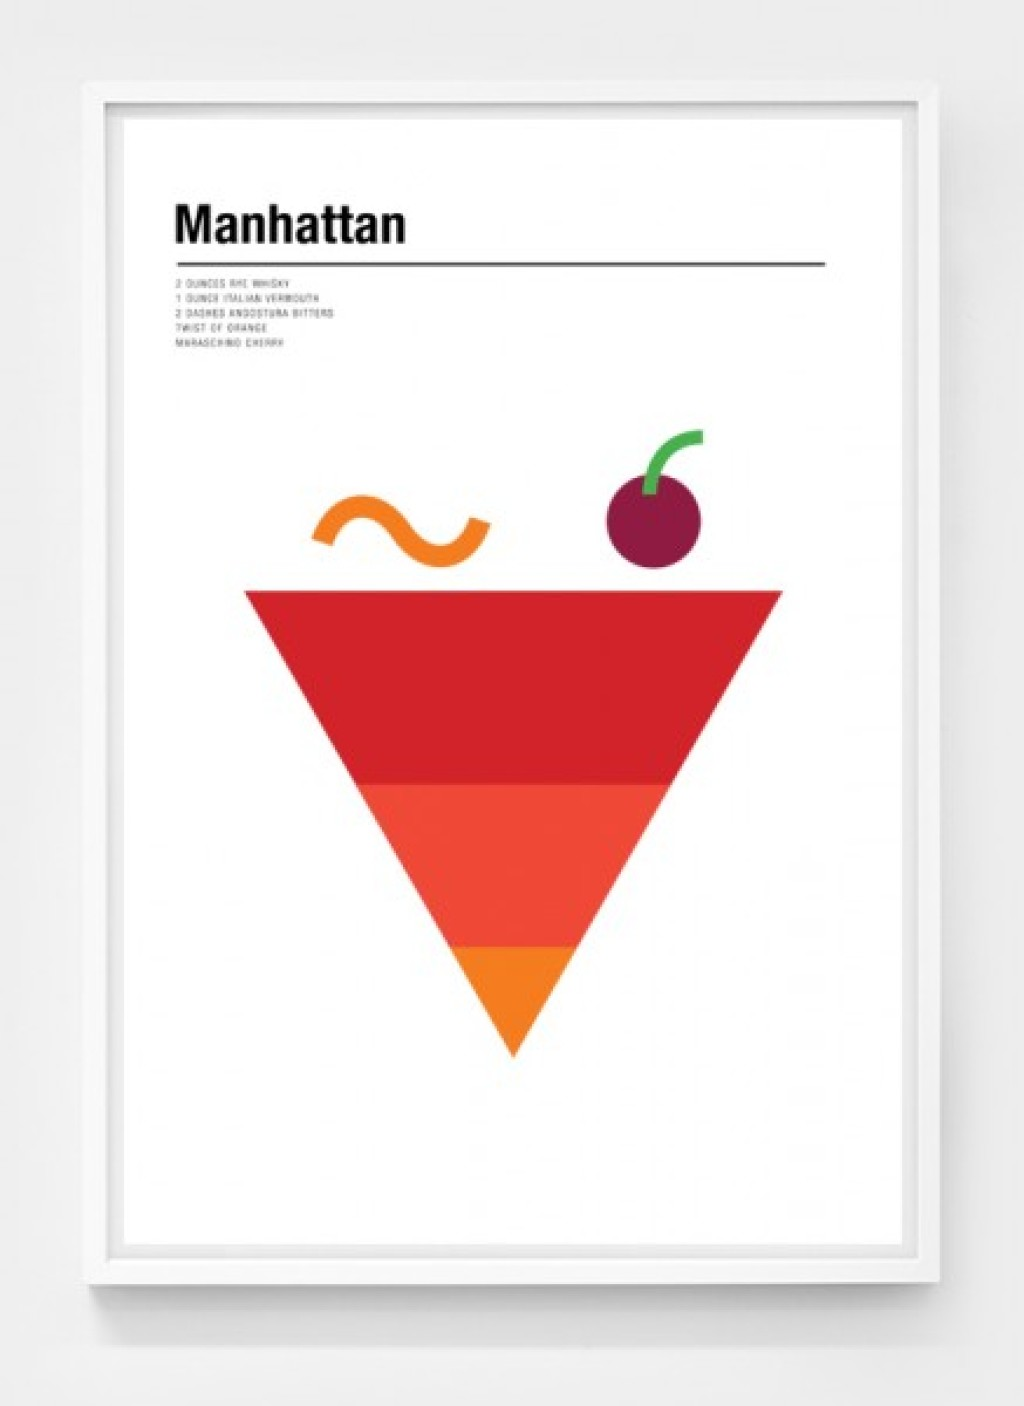 manhattan-minimalist-cocktail-poster-by-nick-barclay-designs